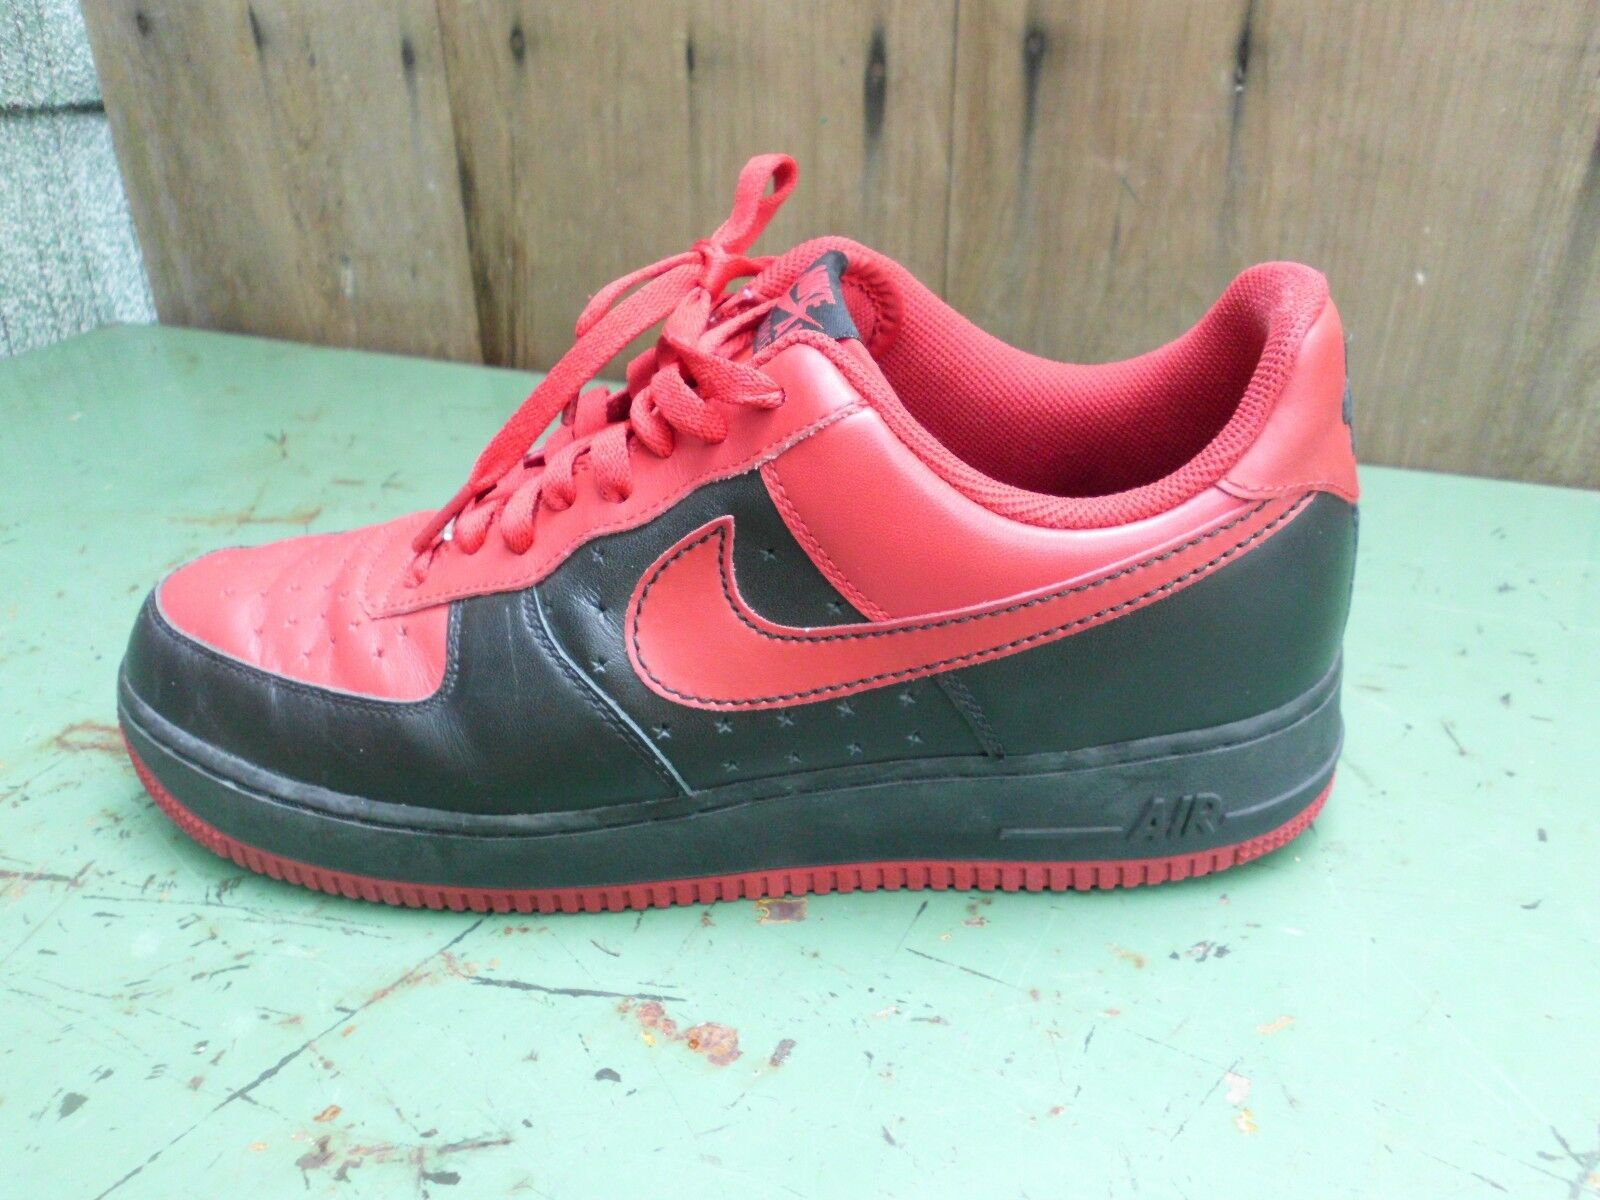 Nike Air Force AMPUTEE 1 XXV Size 11 AMPUTEE Force LEFT SHOE ONLY 6e1b53